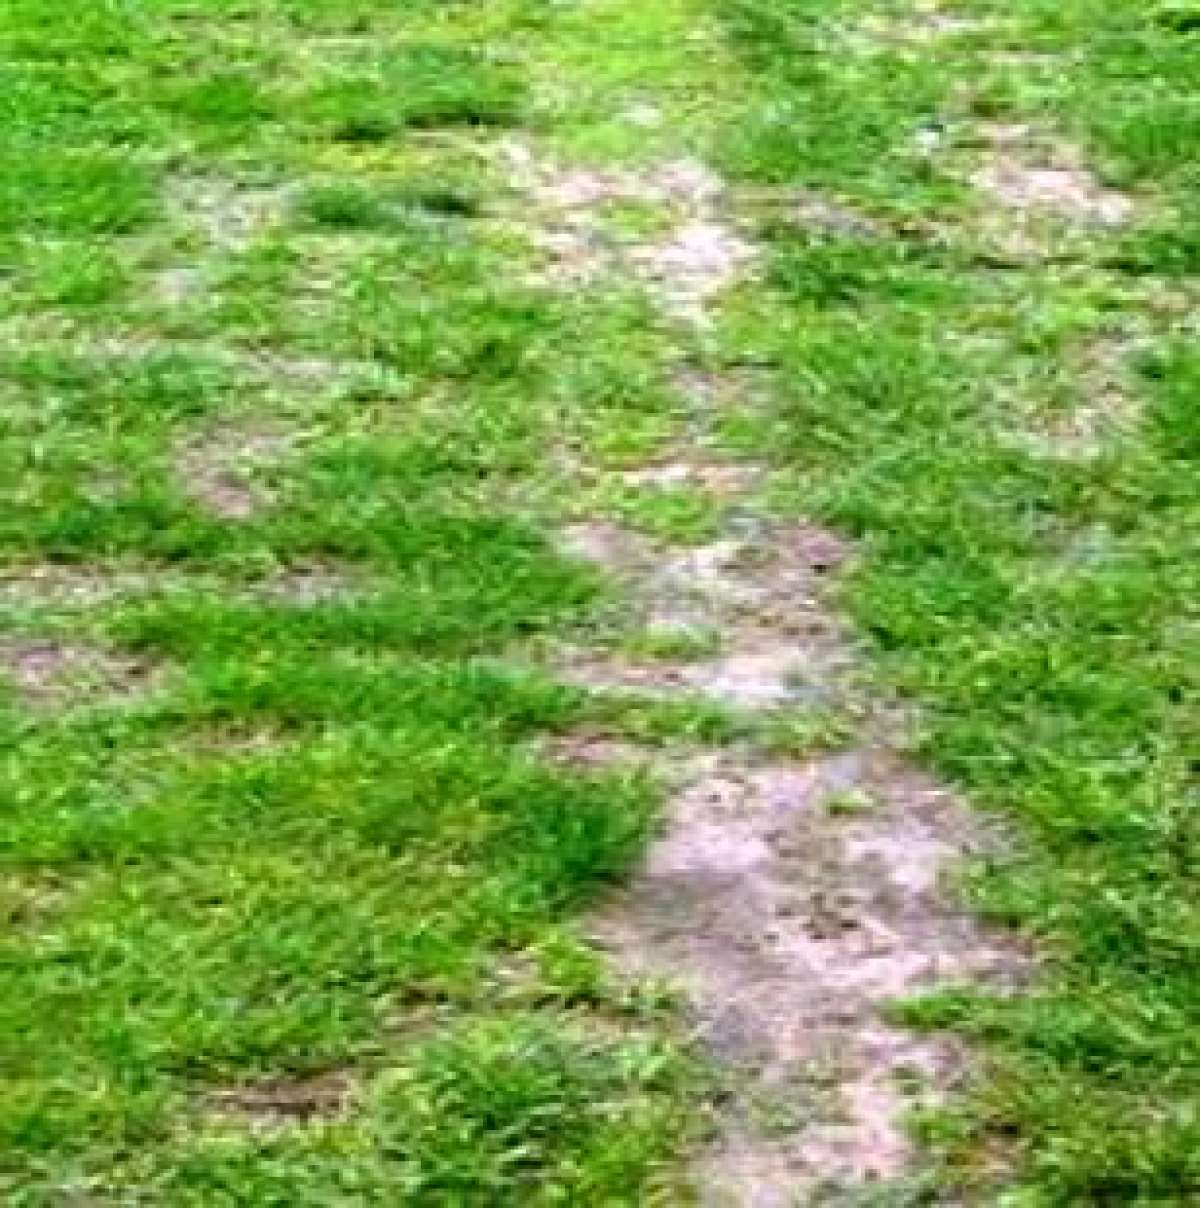 Remedy Lawn Soil Compaction